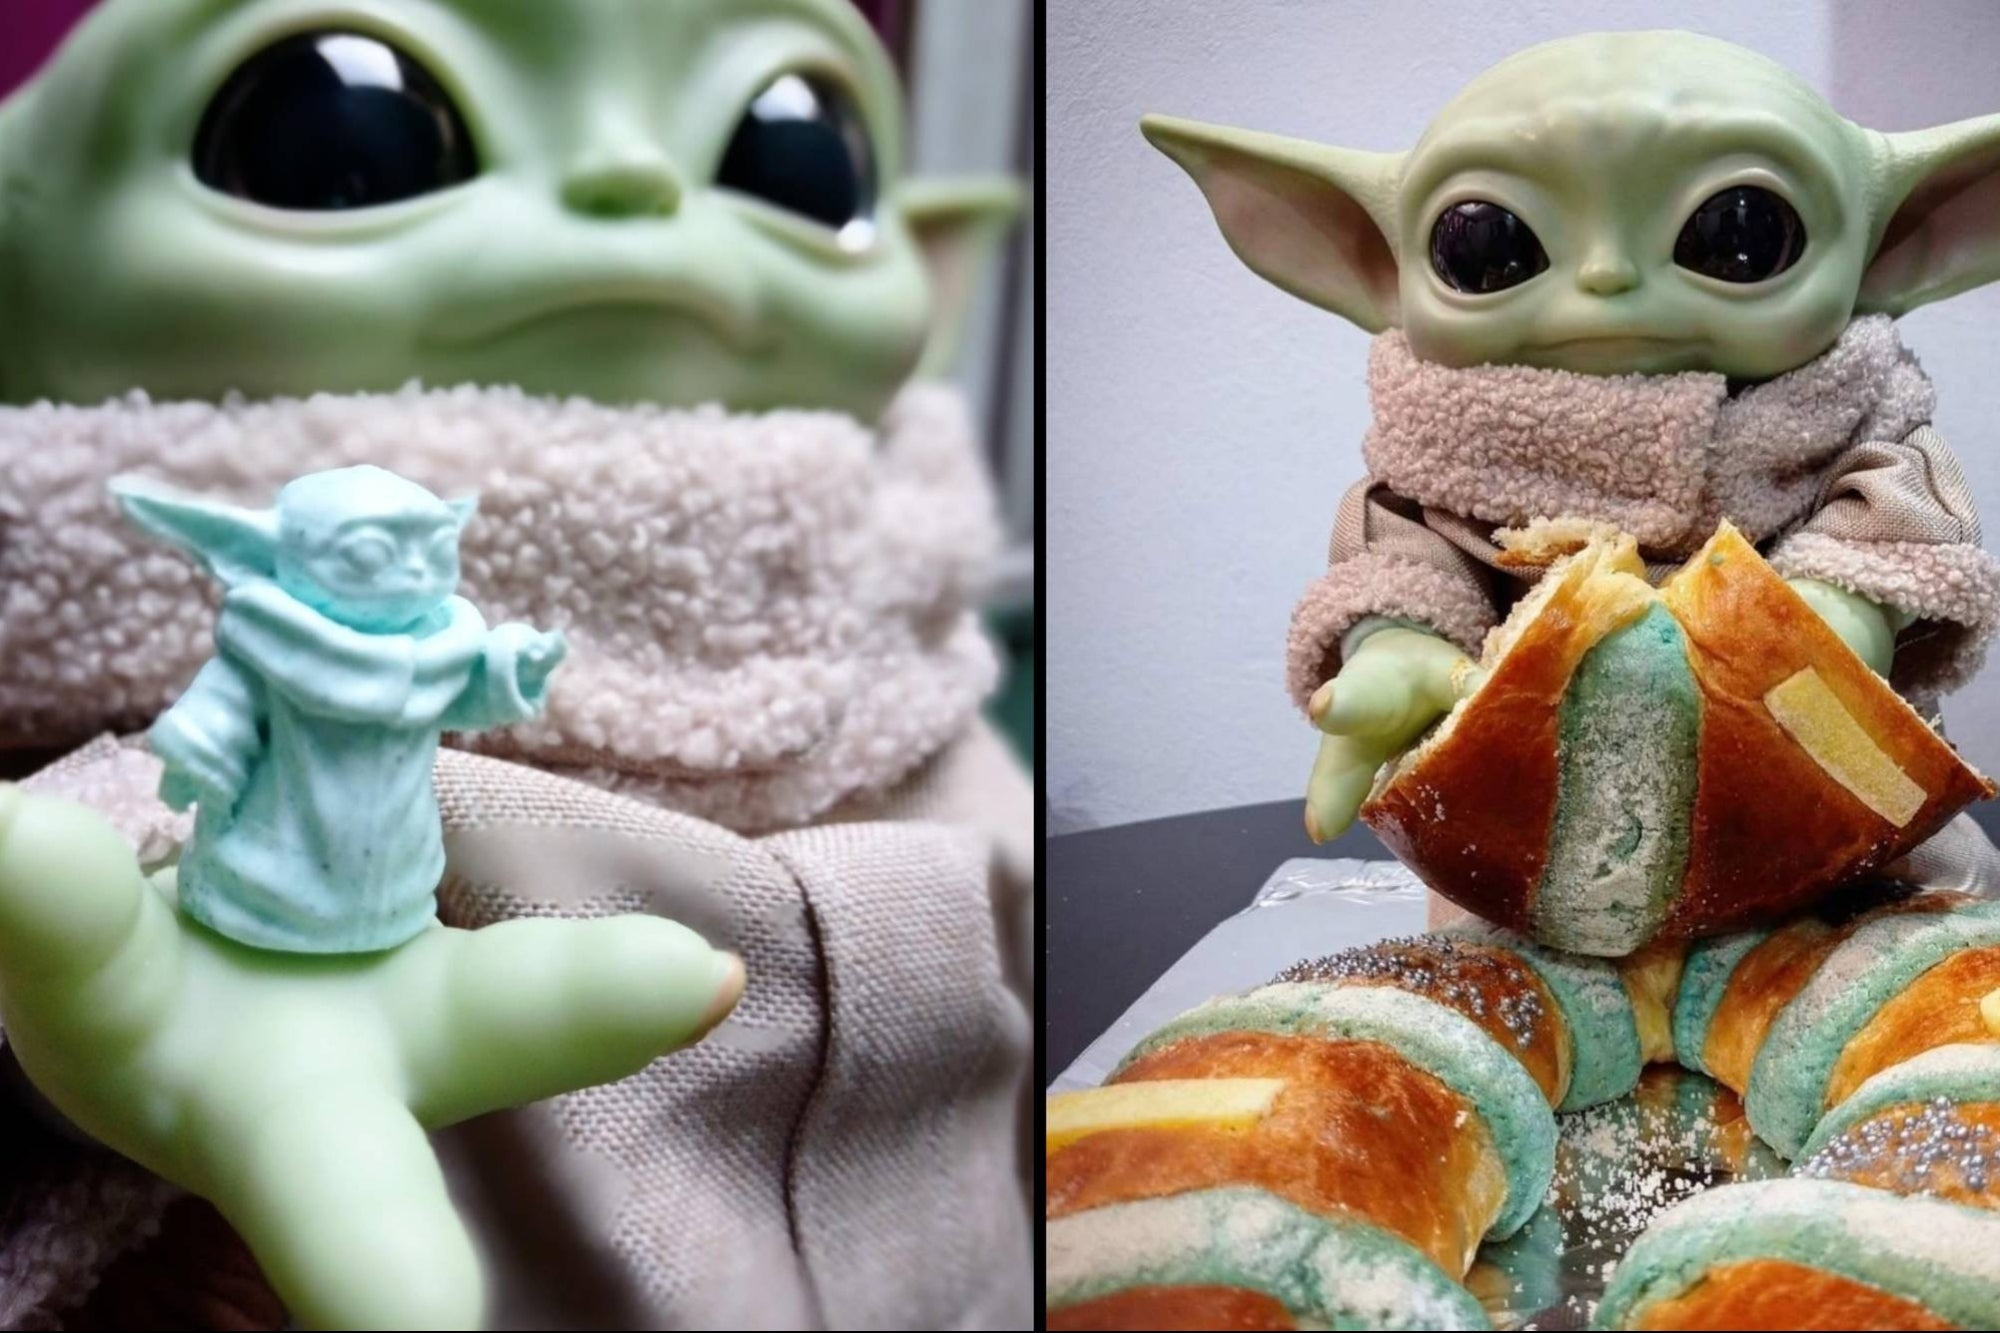 Baby Yoda Bread You Can Order at Home